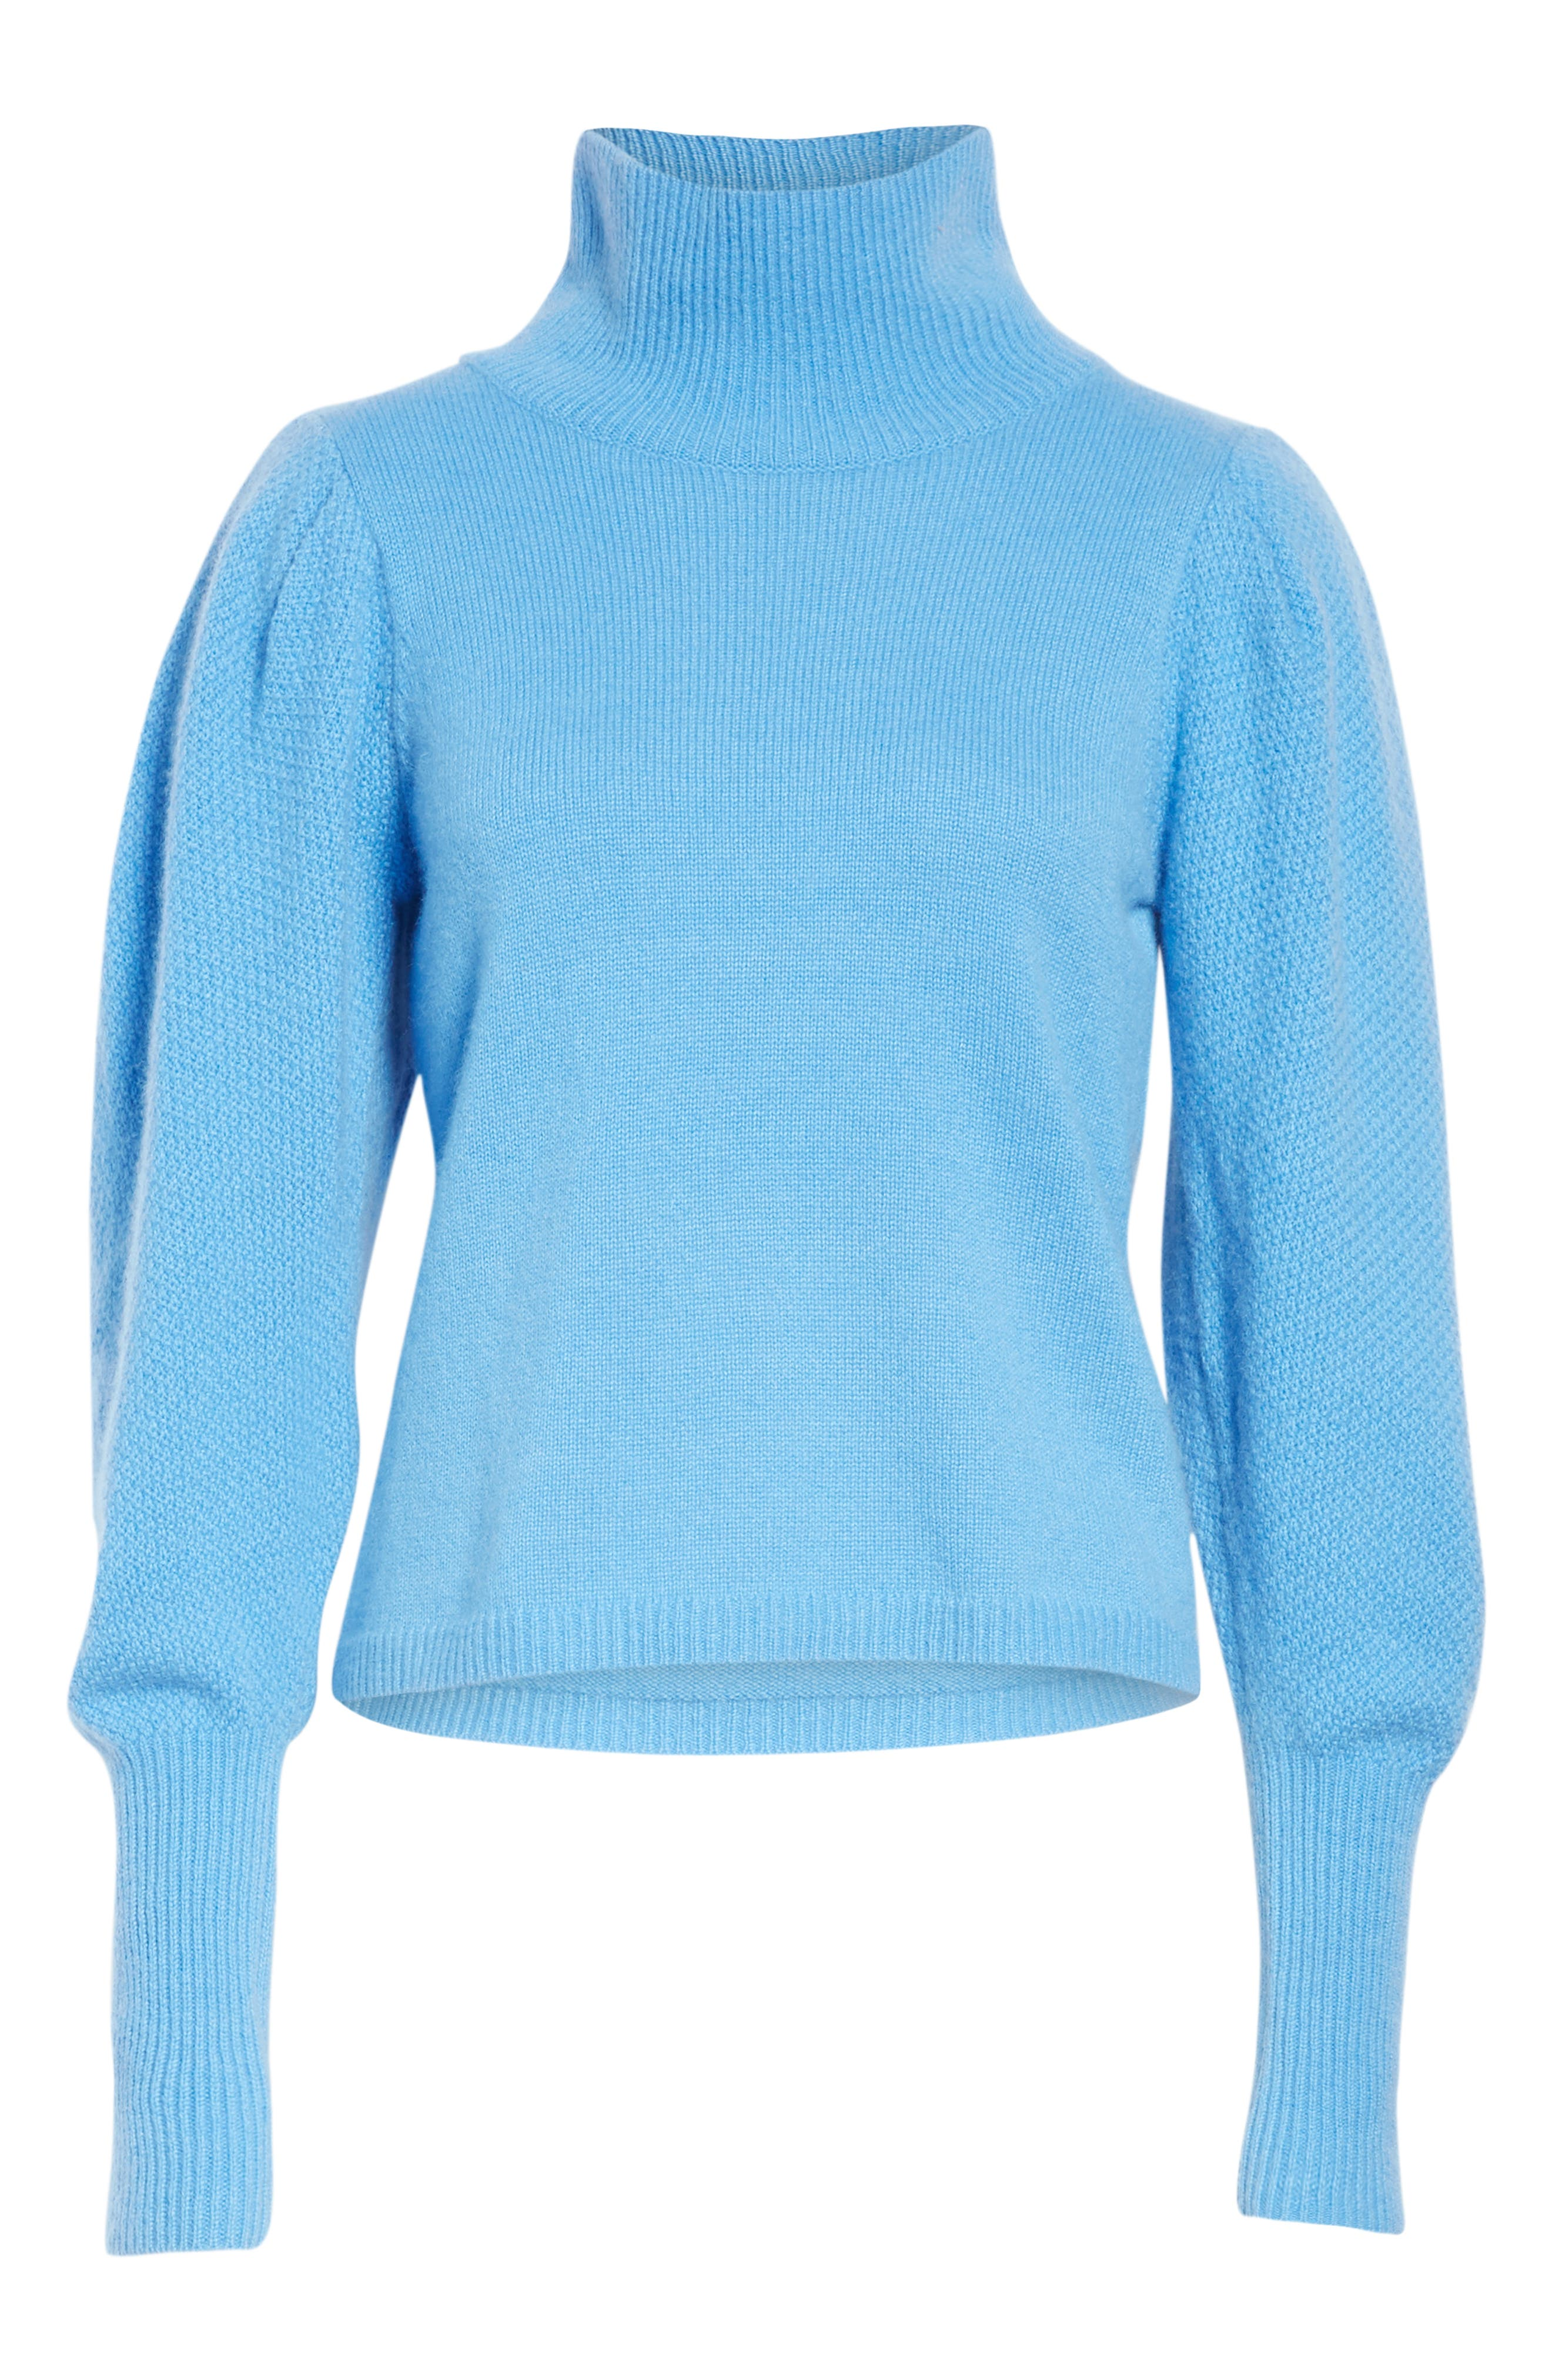 Beatrice Wool & Cashmere Sweater,                             Alternate thumbnail 6, color,                             HYDRANGEA